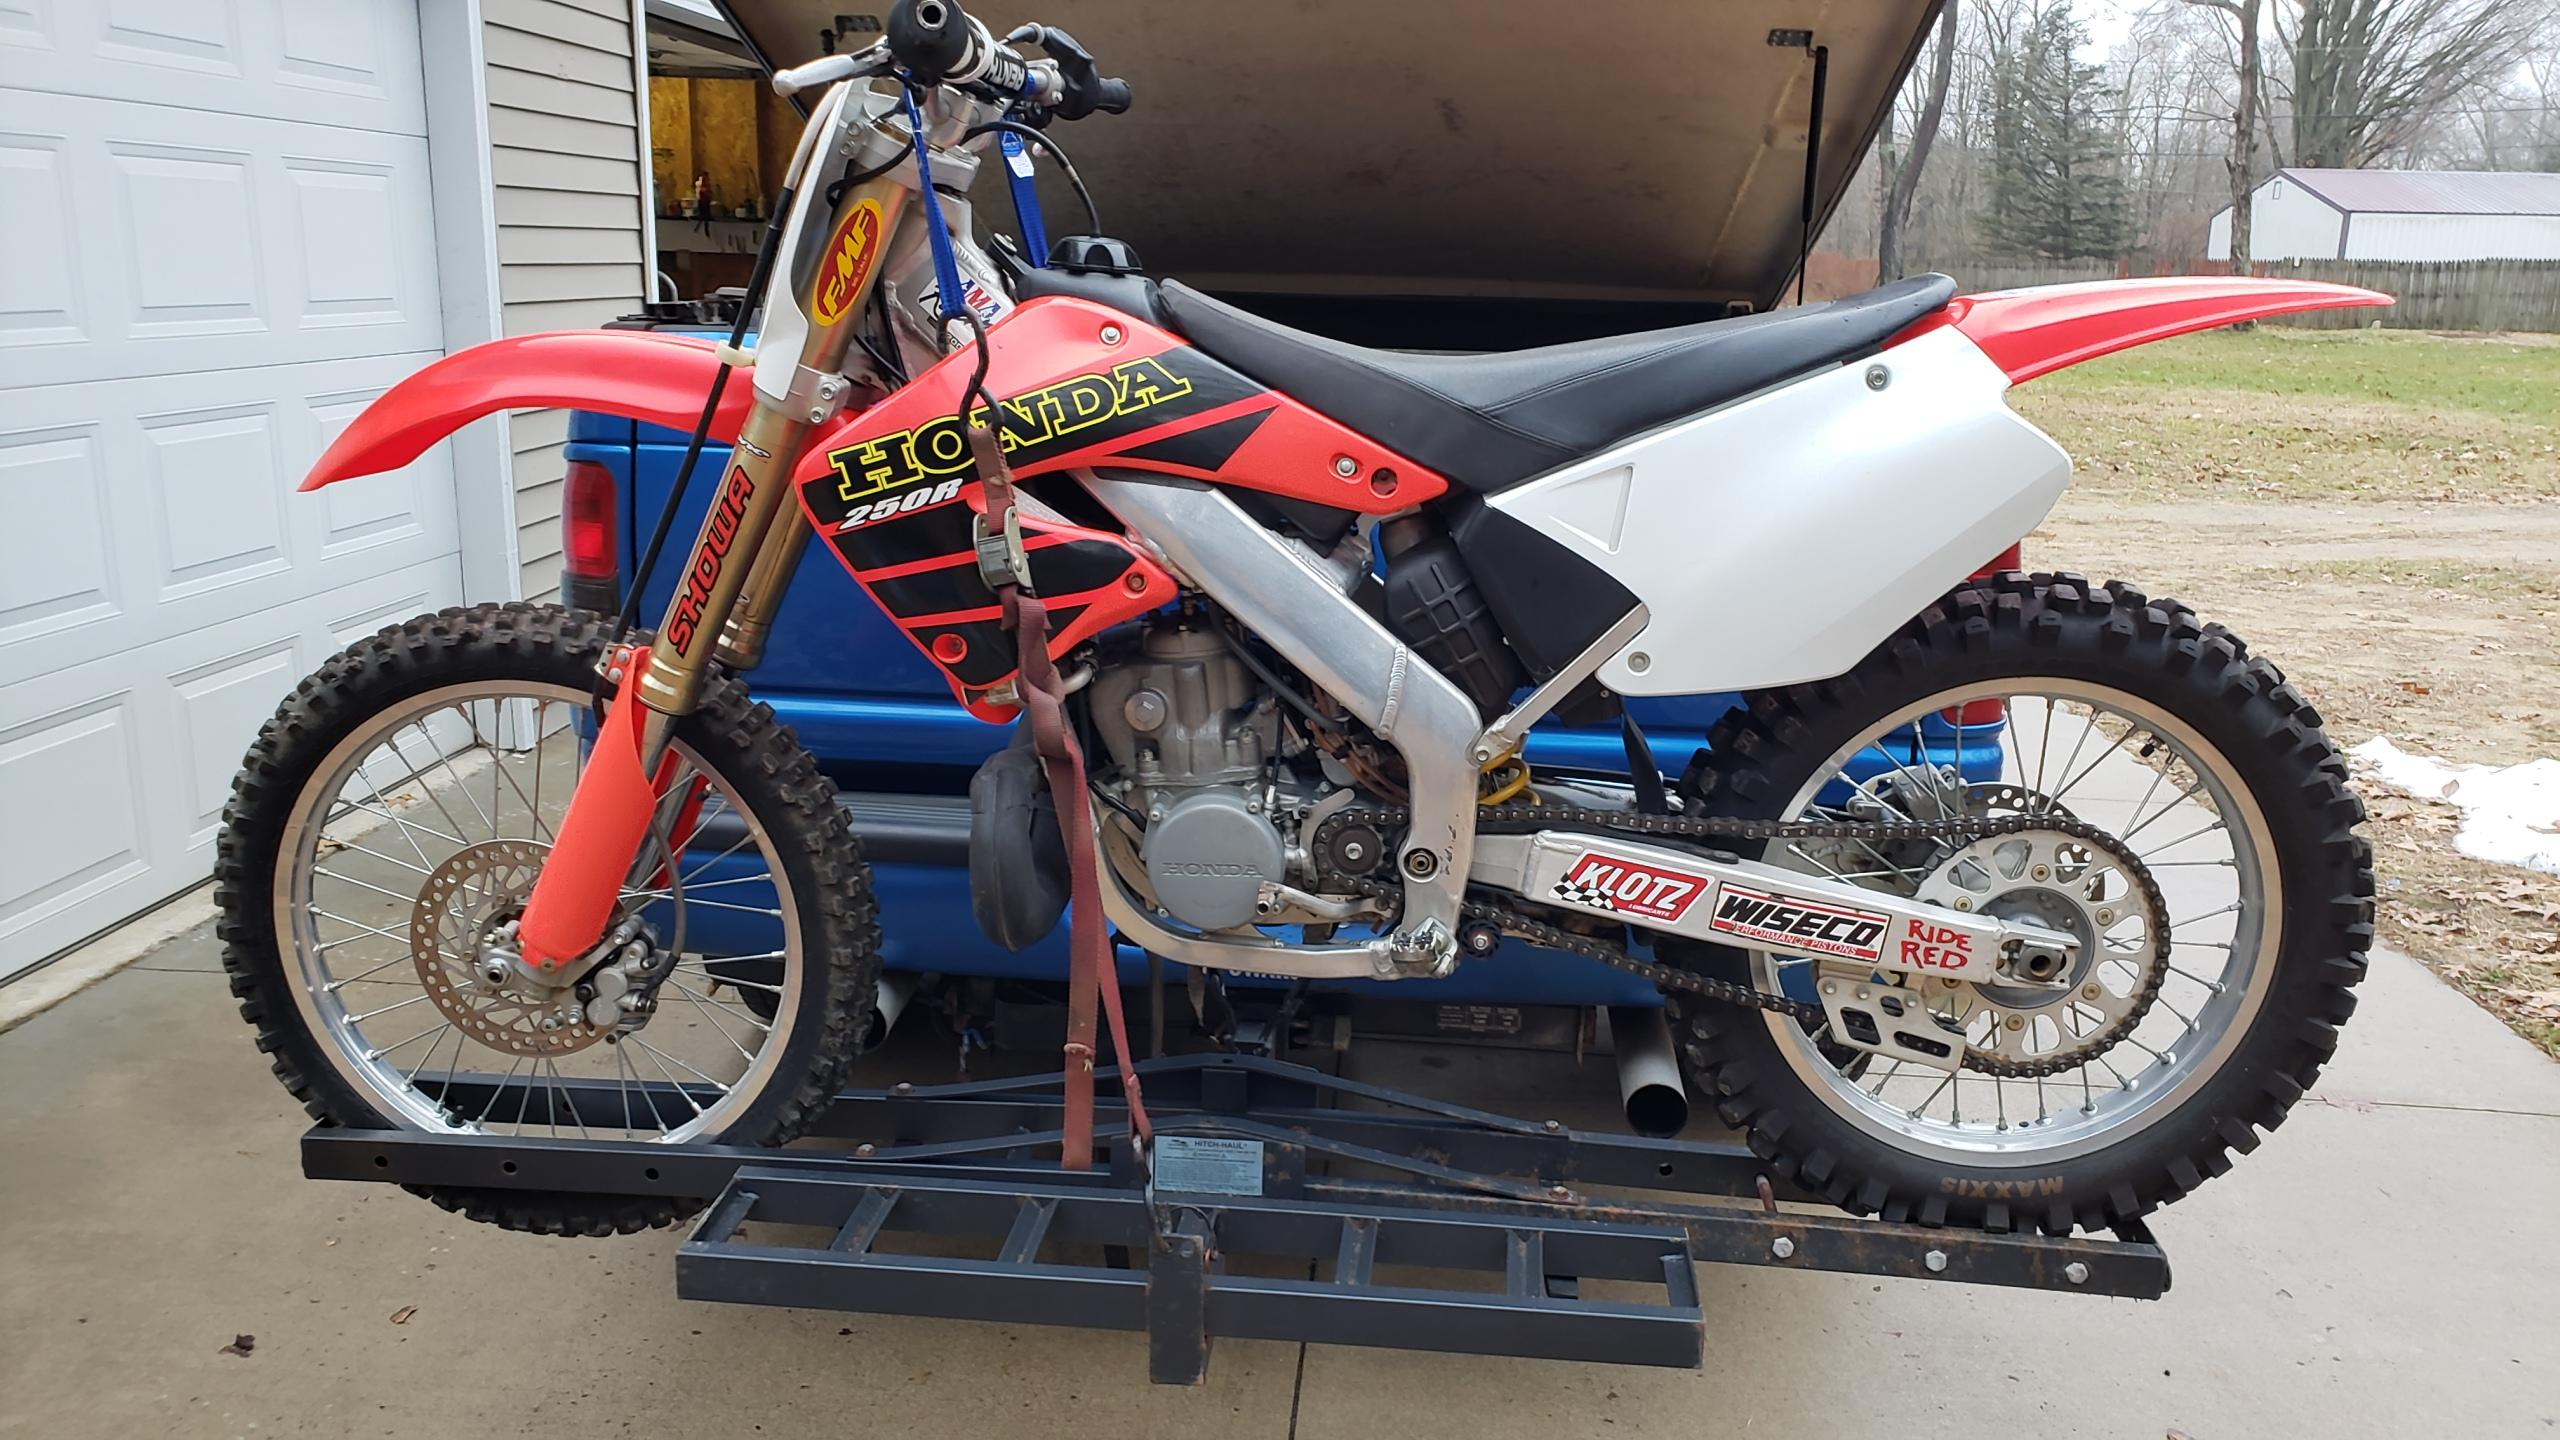 cr250r 2001 with 20 hours fantastic